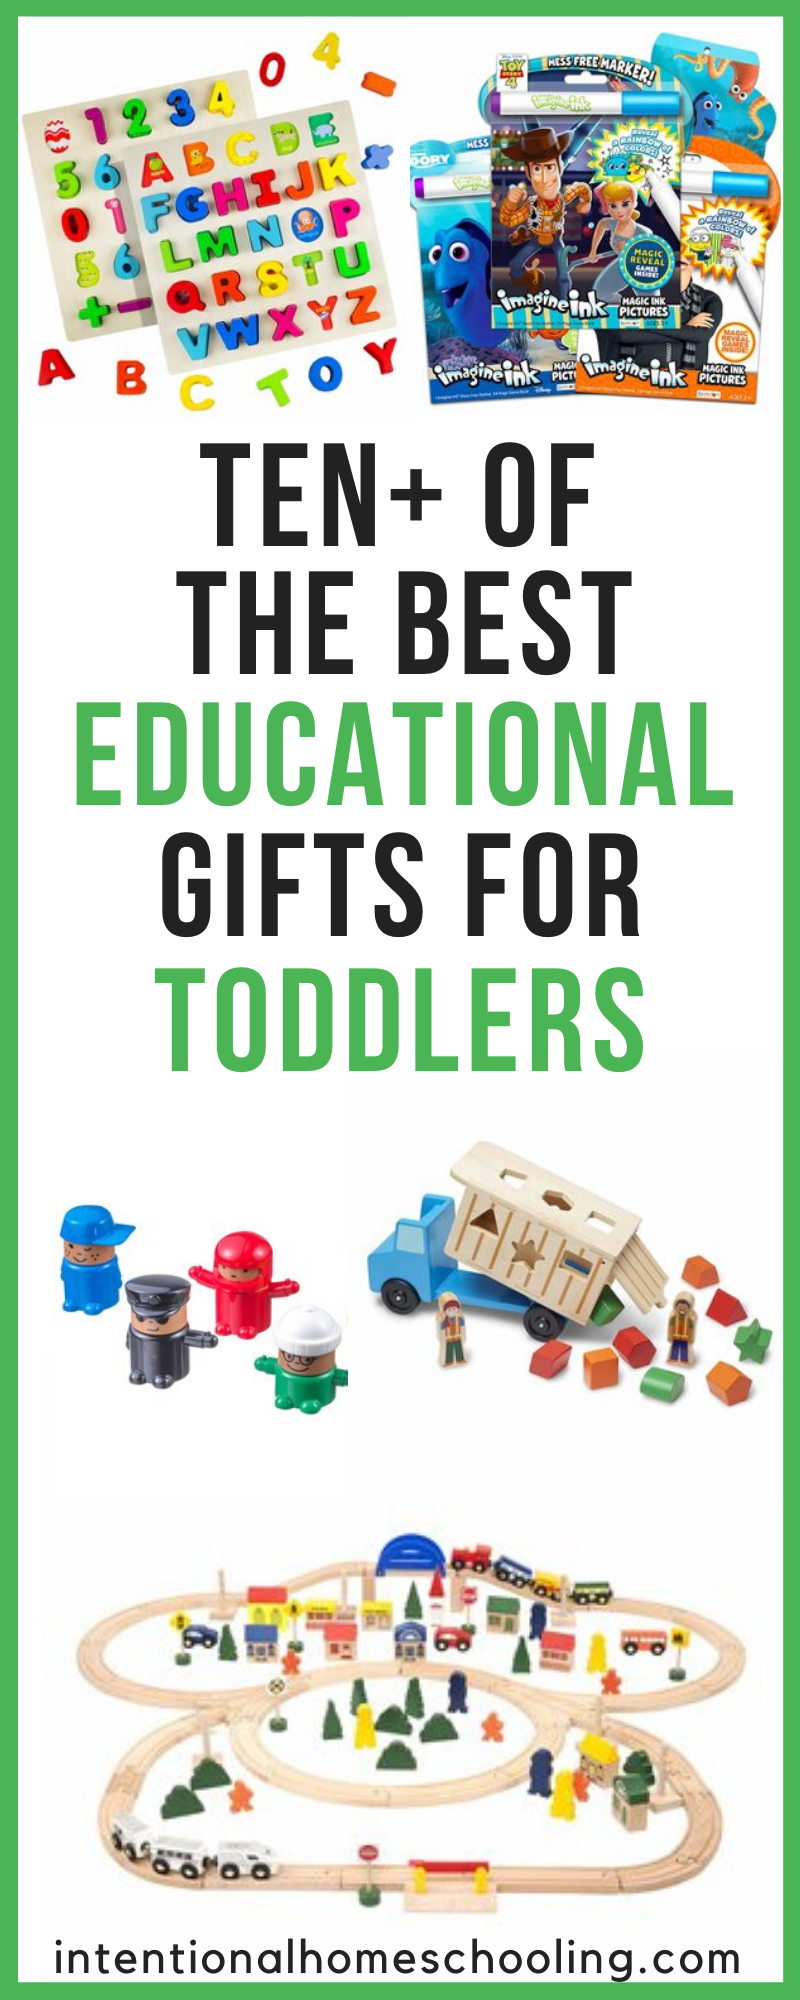 The Best Educational Gifts and Toys for Toddlers